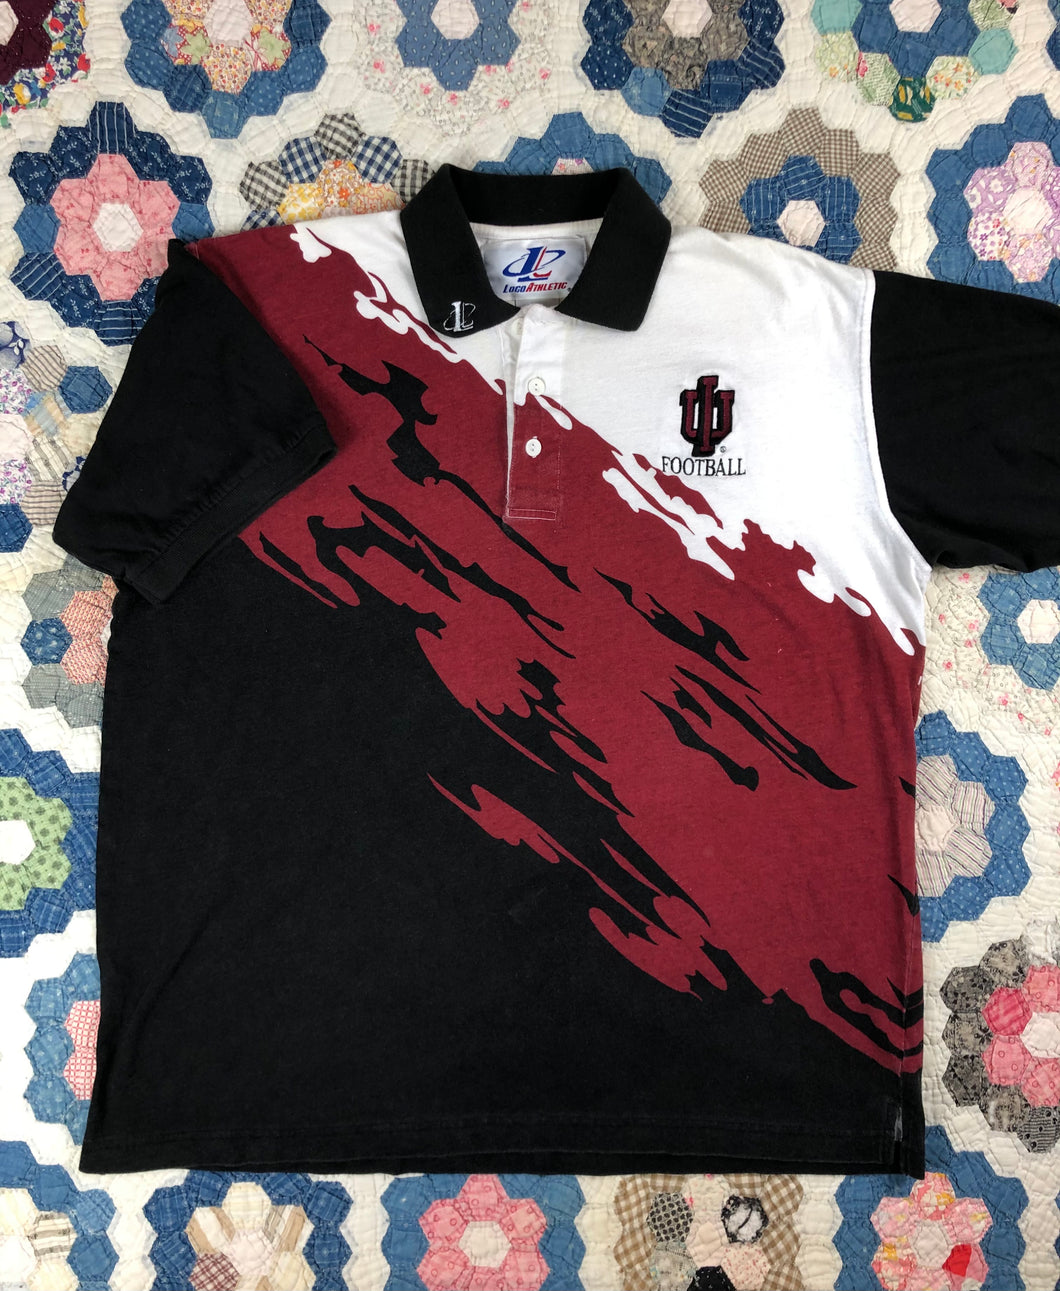 Vintage 90s IU paint Splatter polo shirt size XL